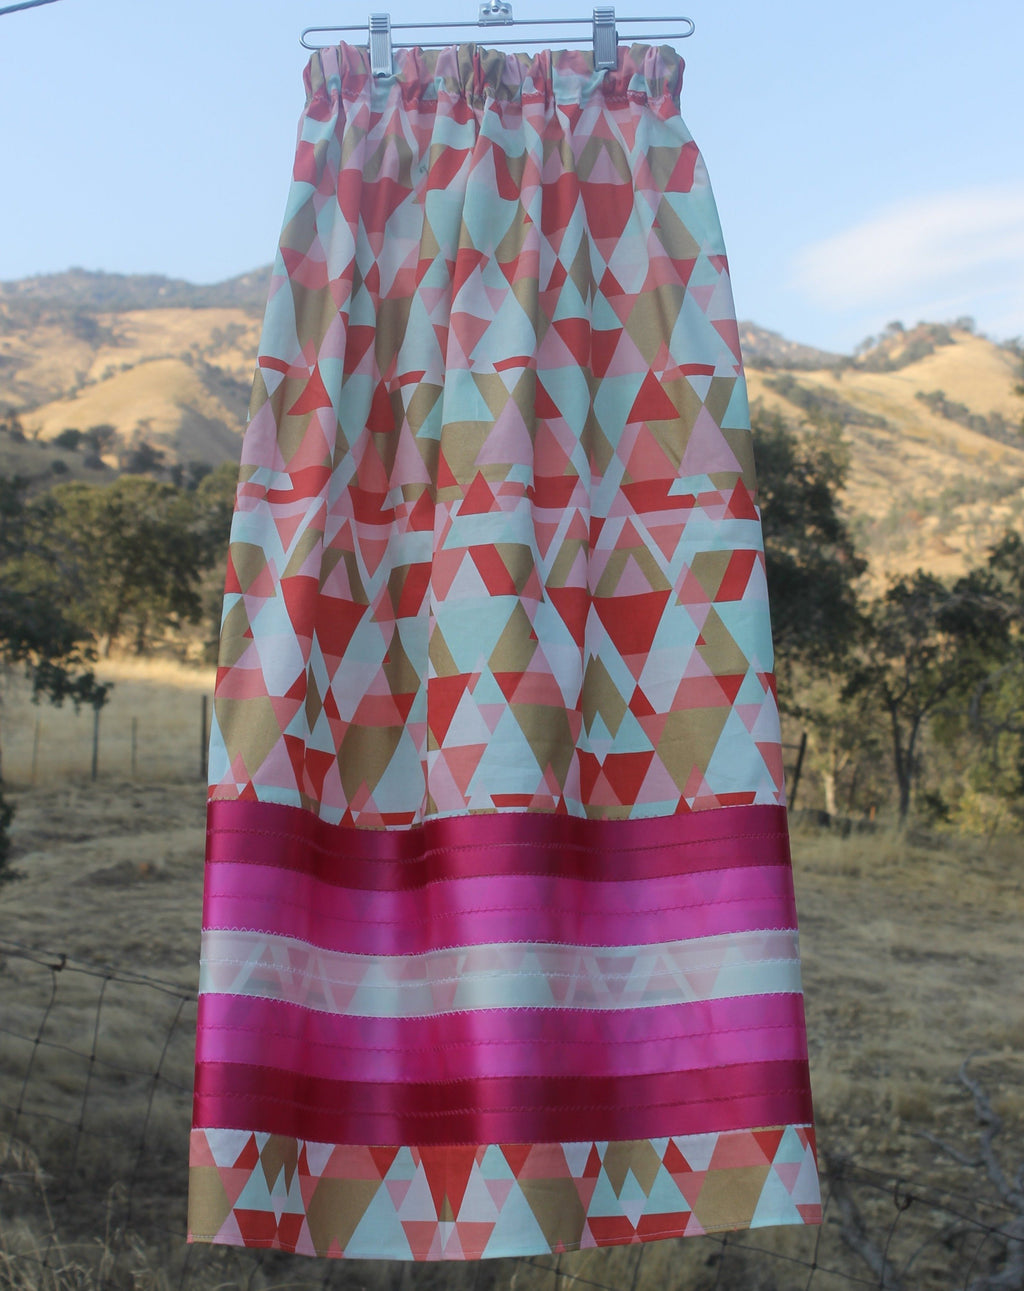 Pink and Gold Ribbon Skirt ribbon skirt black, comfortable, Cotton, dress, fabric, Fall, Fashion, Indian, Indigenous, Native, oit, Our, pink, pow, Powwow, ribbon, ribbon skirt, skirt, Spring,